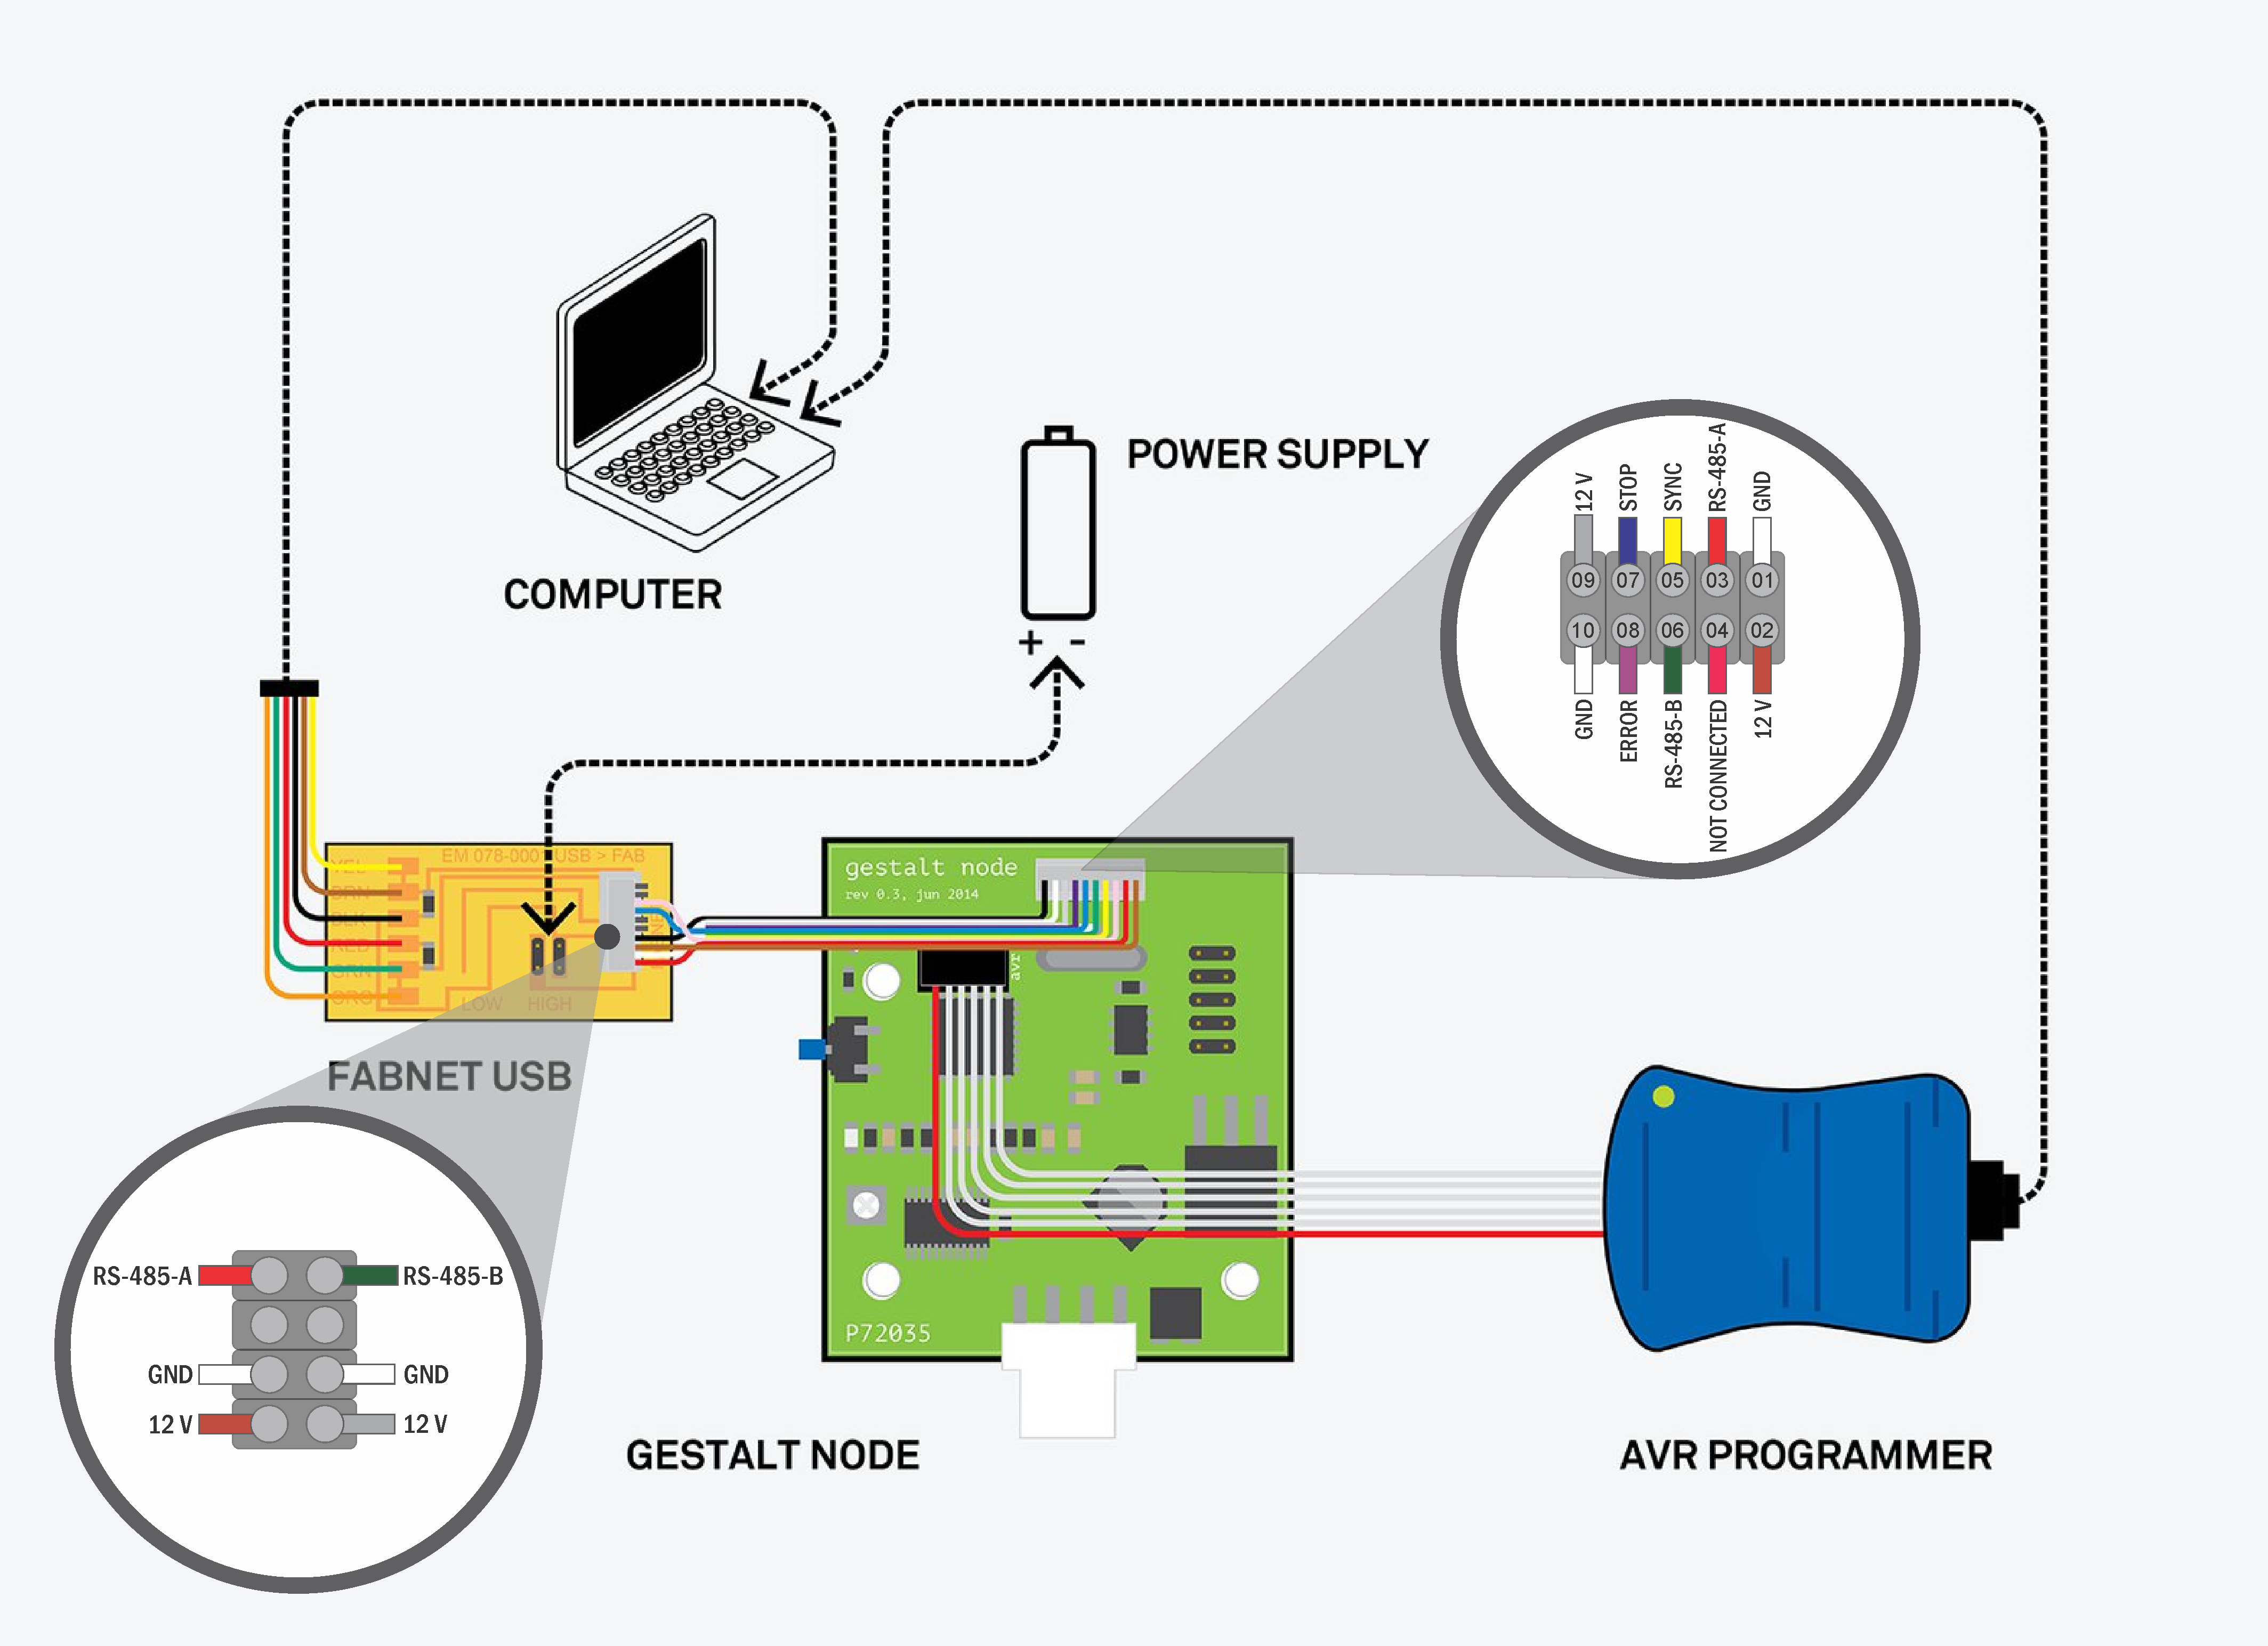 Mmtm Fablab Tecsup Single Node Wiring Diagram Its Very Important Be Carefull With The Order Of Wires To Connect Fabnet First Gestalt It Is Because Any Mistakes Could